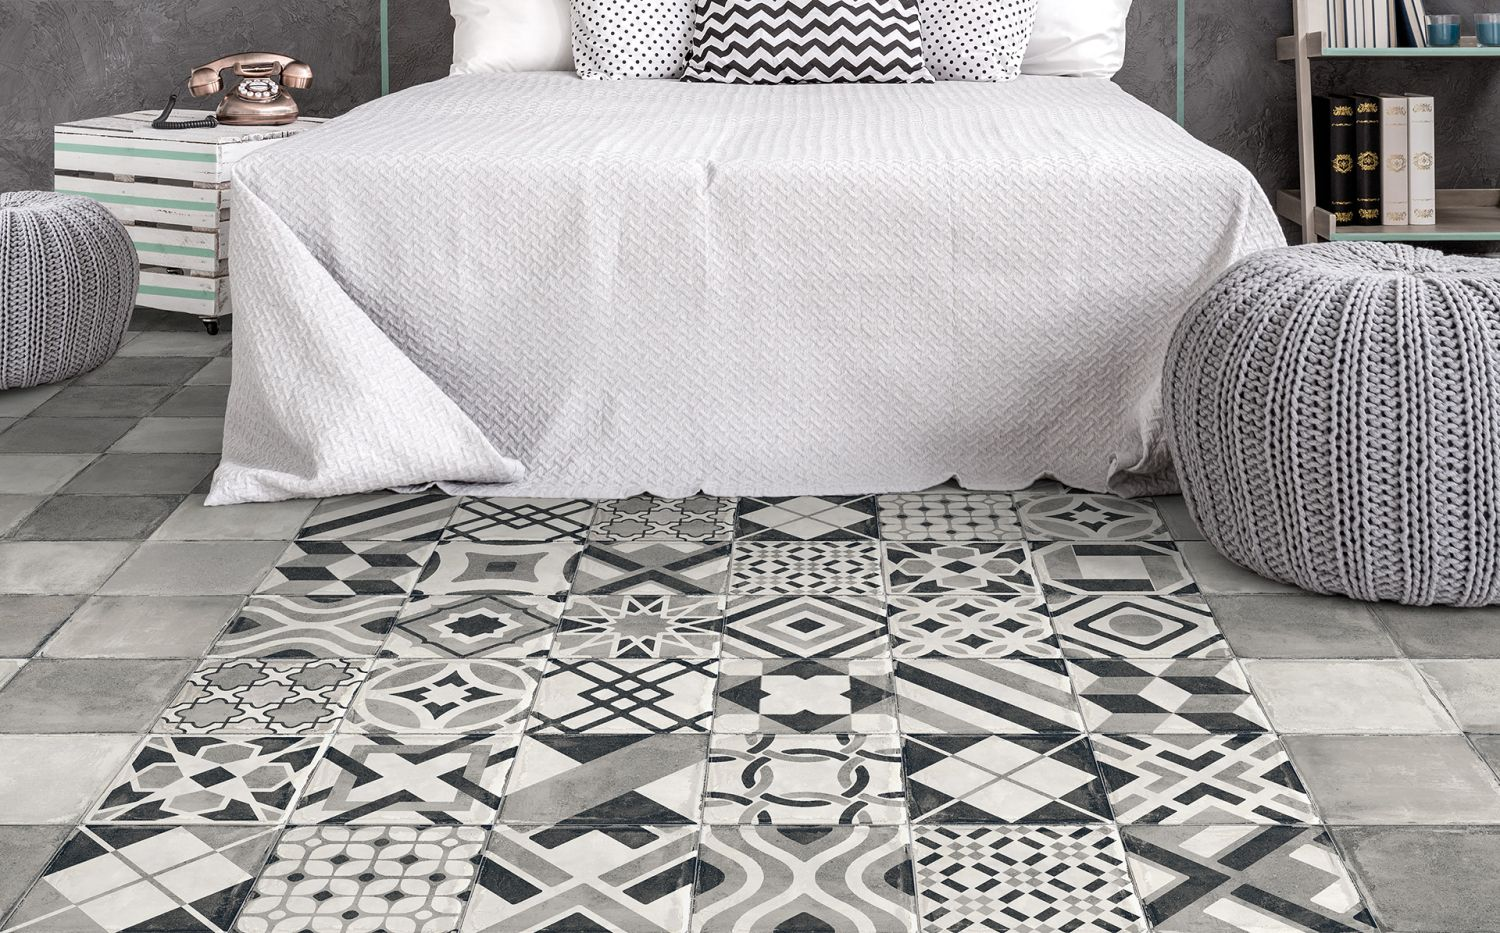 Tile fashion for the urban nation.